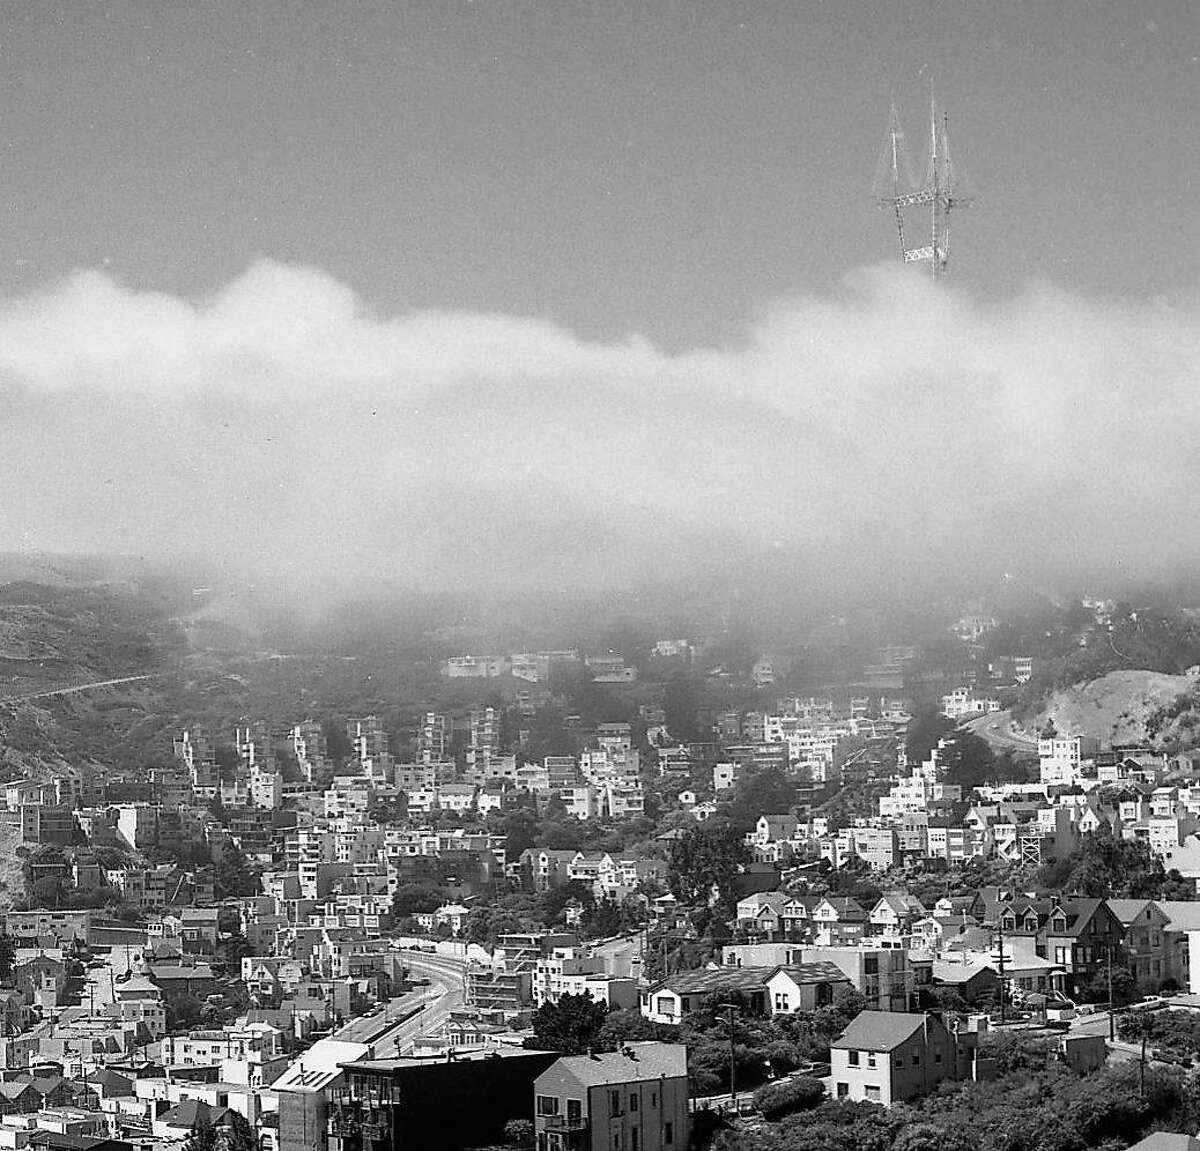 Fog morning in the city around June 28, 1973, looking from Twin Peaks